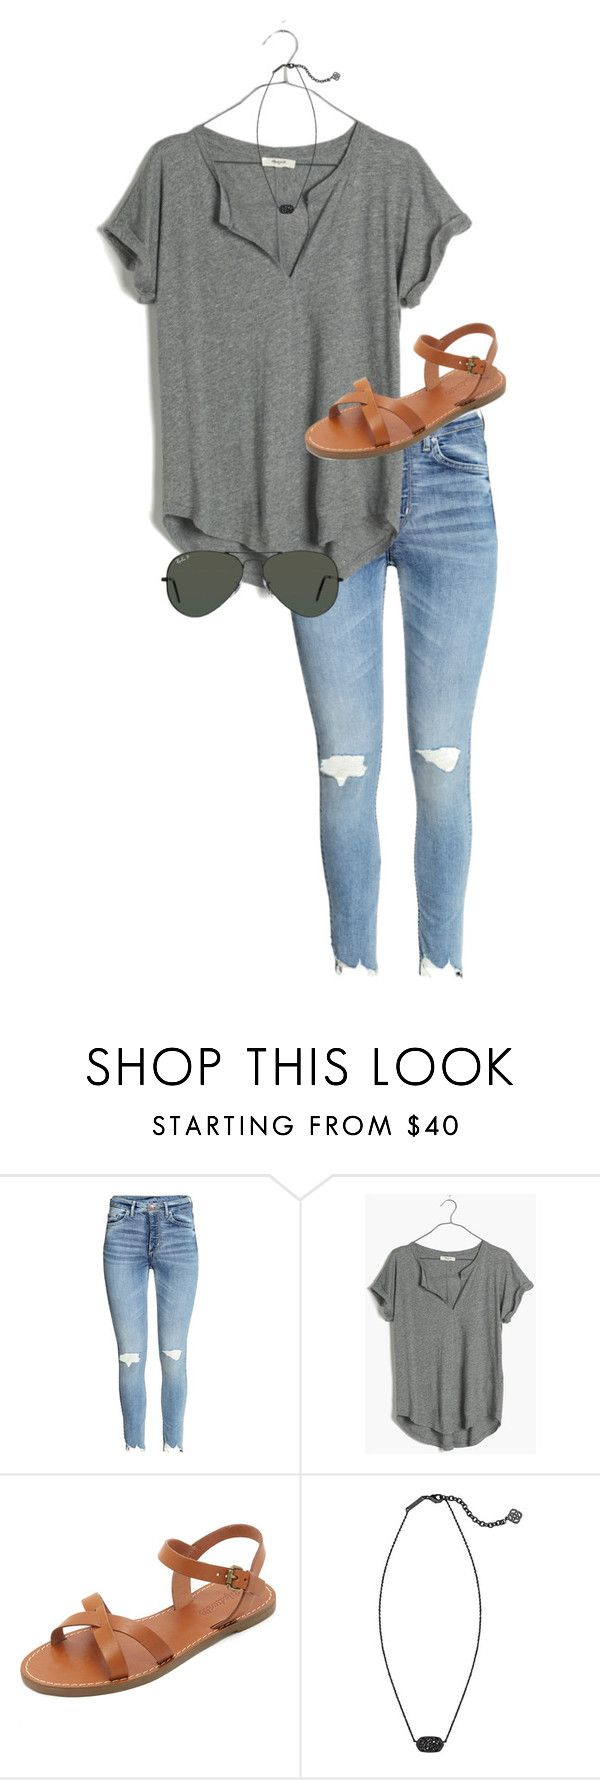 """""""chilllll"""" by caroline-barker ❤ liked on Polyvore featuring Madewell, Kendra Scott and Ray-Ban"""